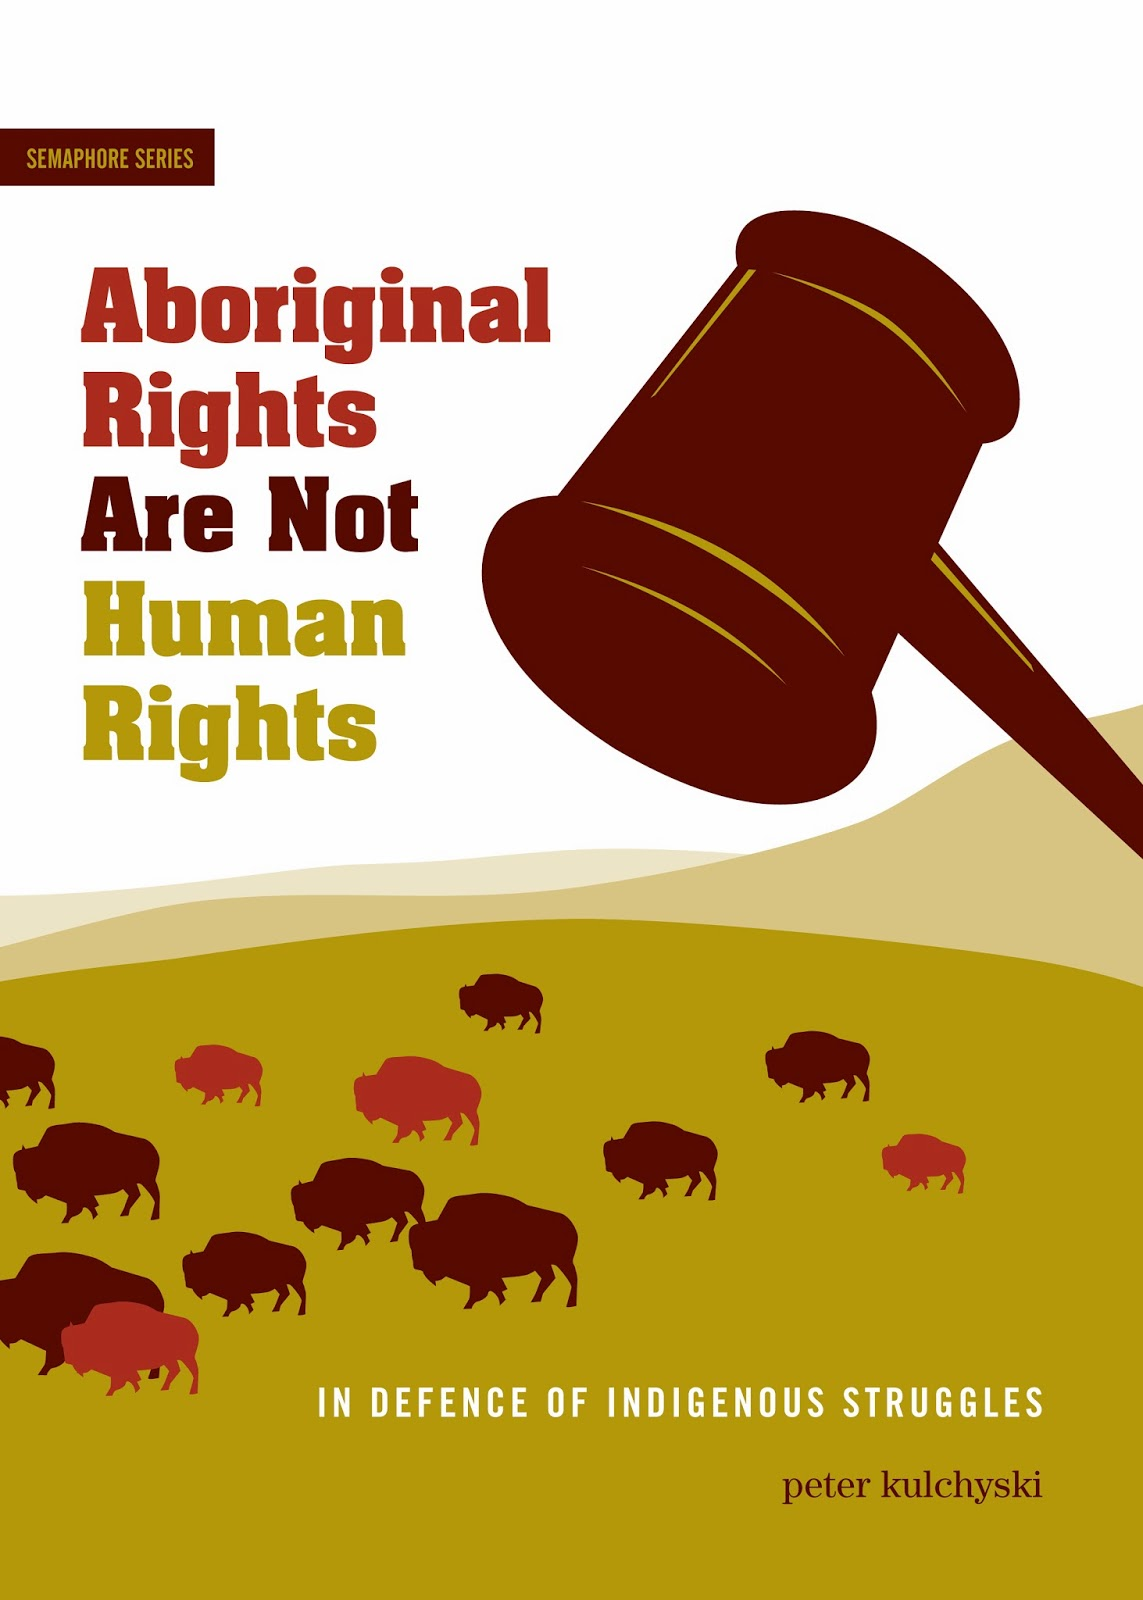 aboriginal rights canada essay Aboriginal timeline 1960-1970 essay provided leadership and allowed the rest of canada to try and understand this began the aboriginal rights.